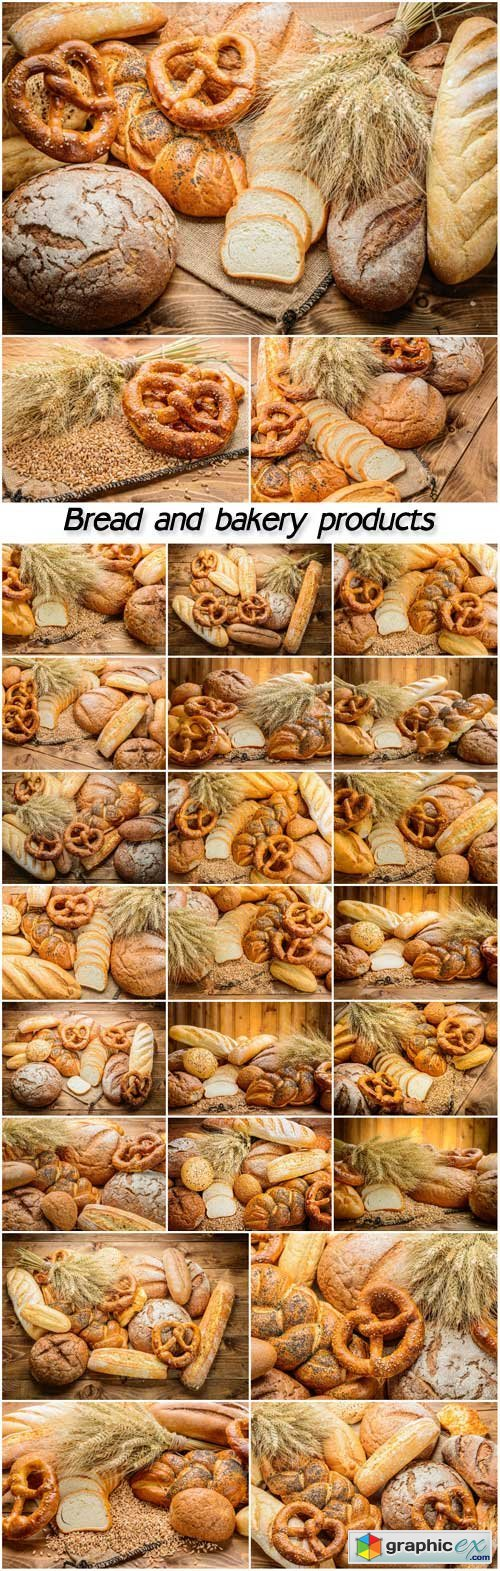 Bread and bakery products collages